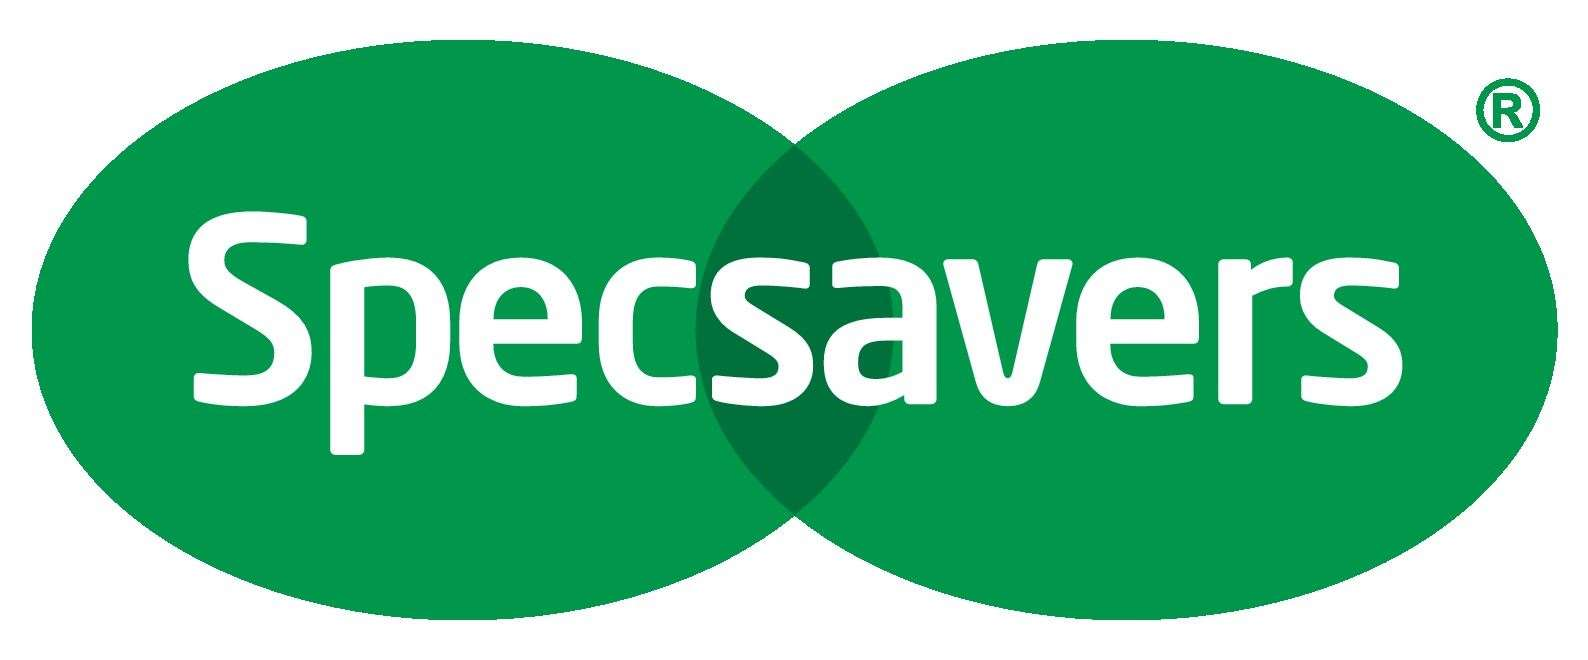 Specsavers is moving to Tenterden